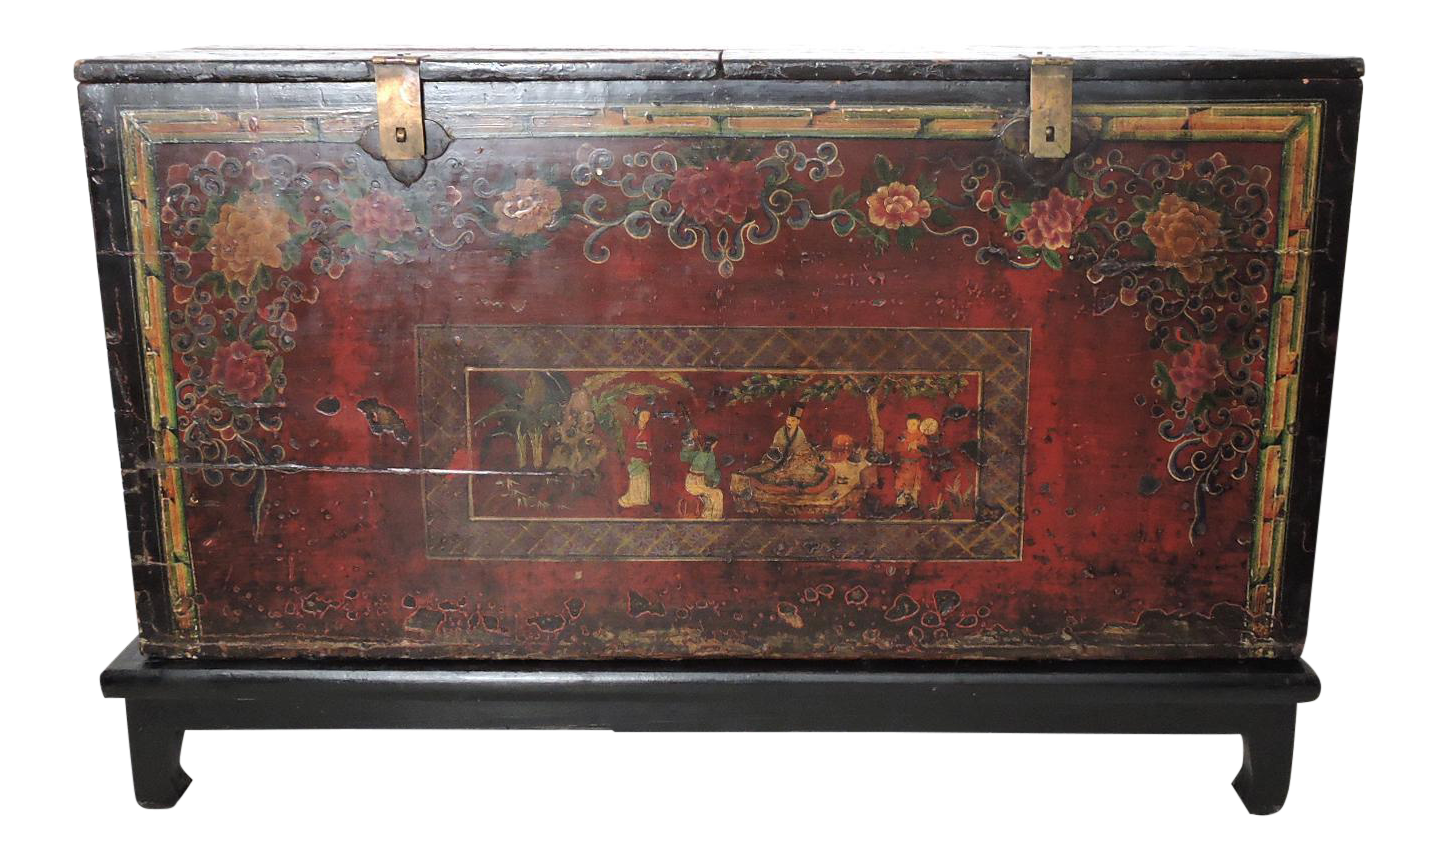 Superieur Historical Antique Chinese Storage Chest/Trunk For Sale